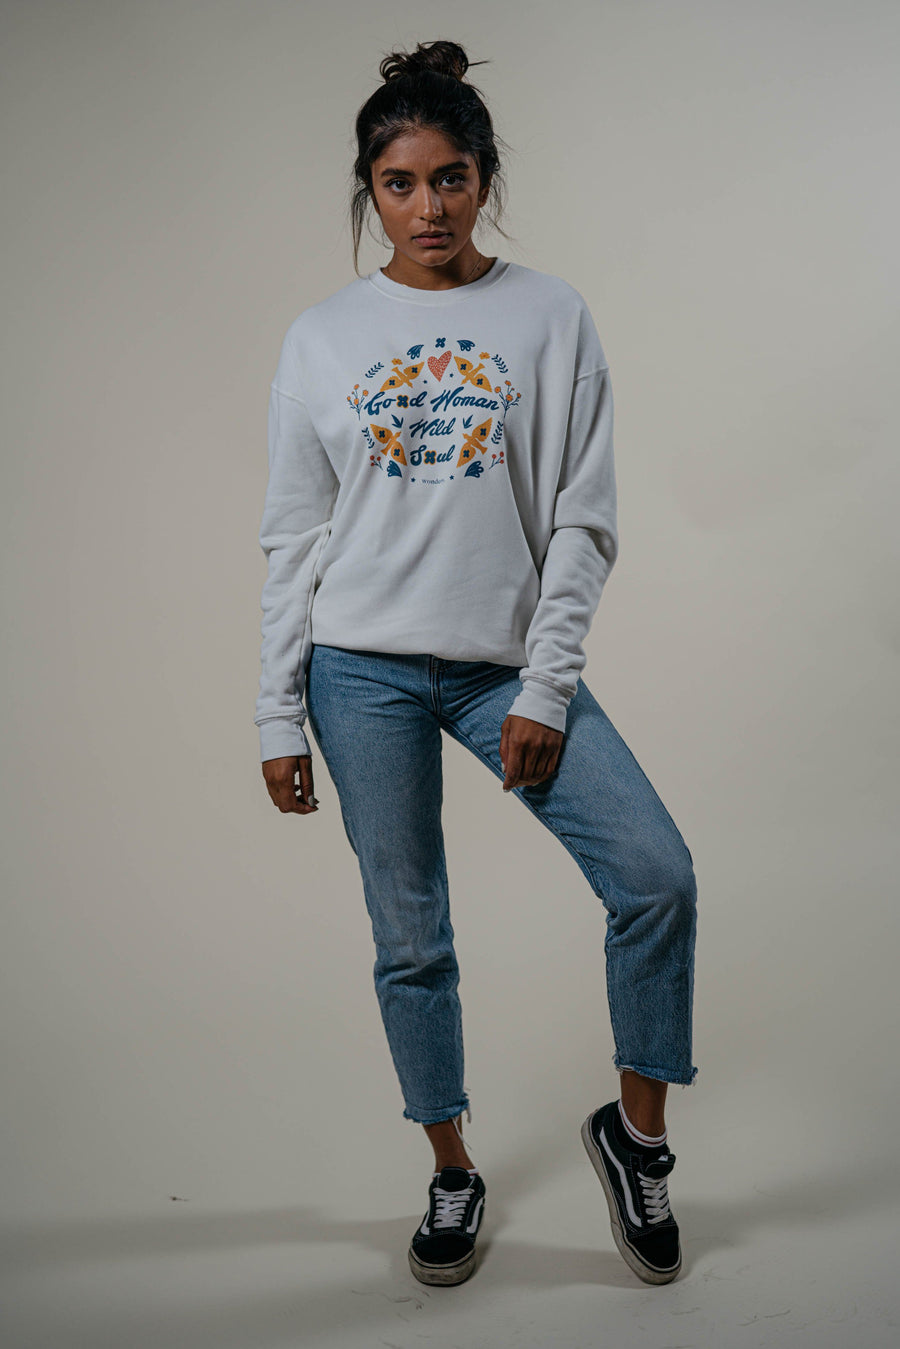 Good Woman Wild Soul Crewneck - Wondery, A Parks Apparel Brand